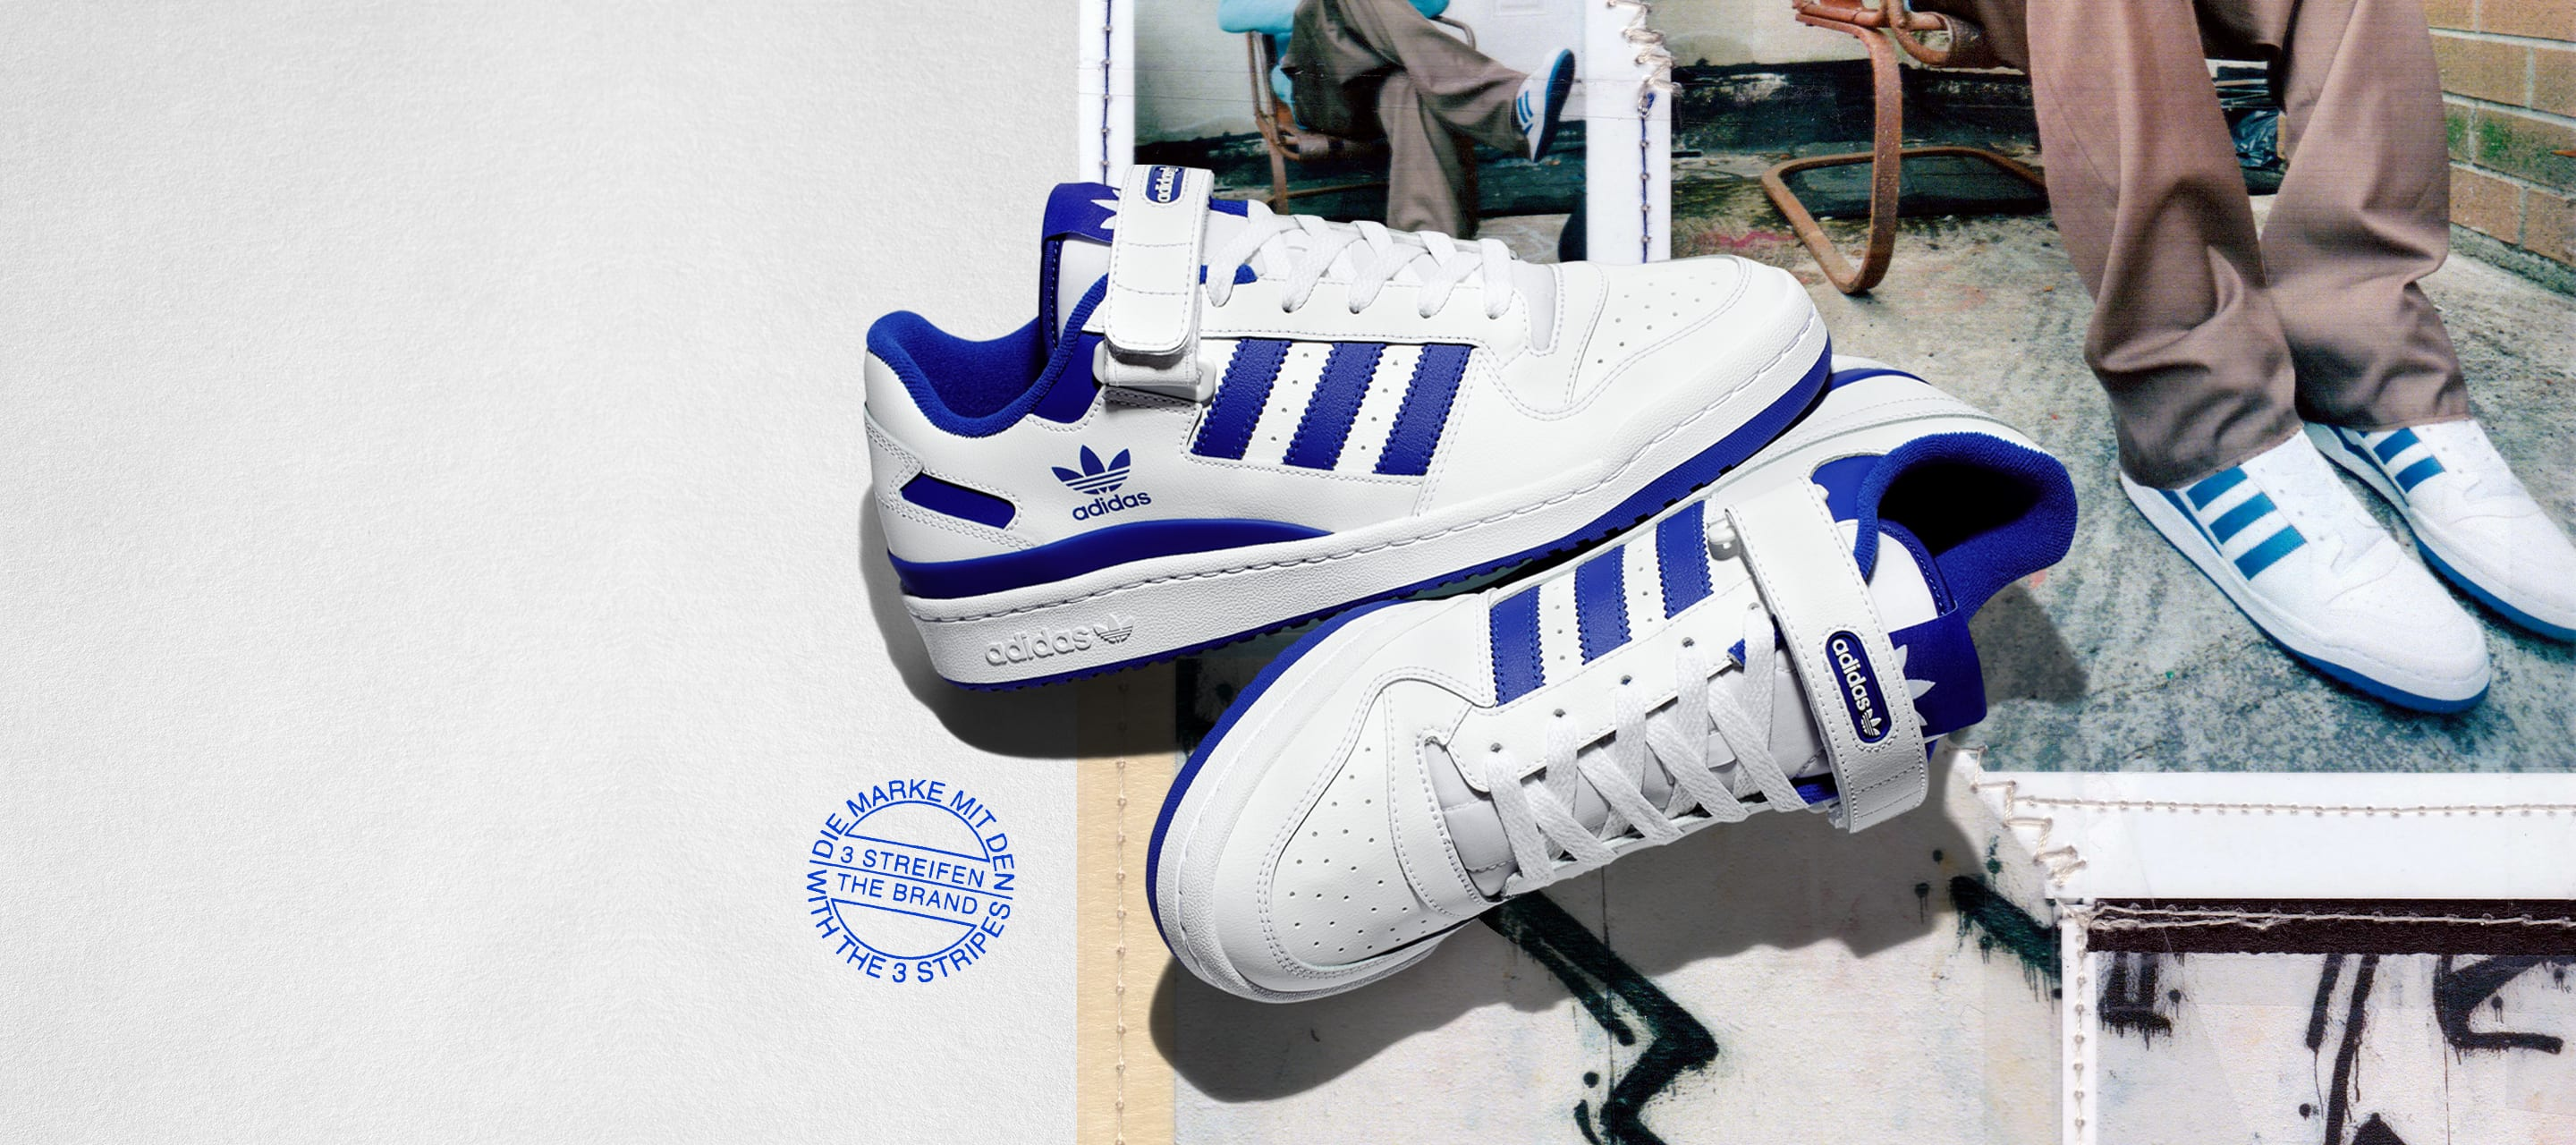 The new Forum Low in white and blue shown with collage backgound featuring product on model.